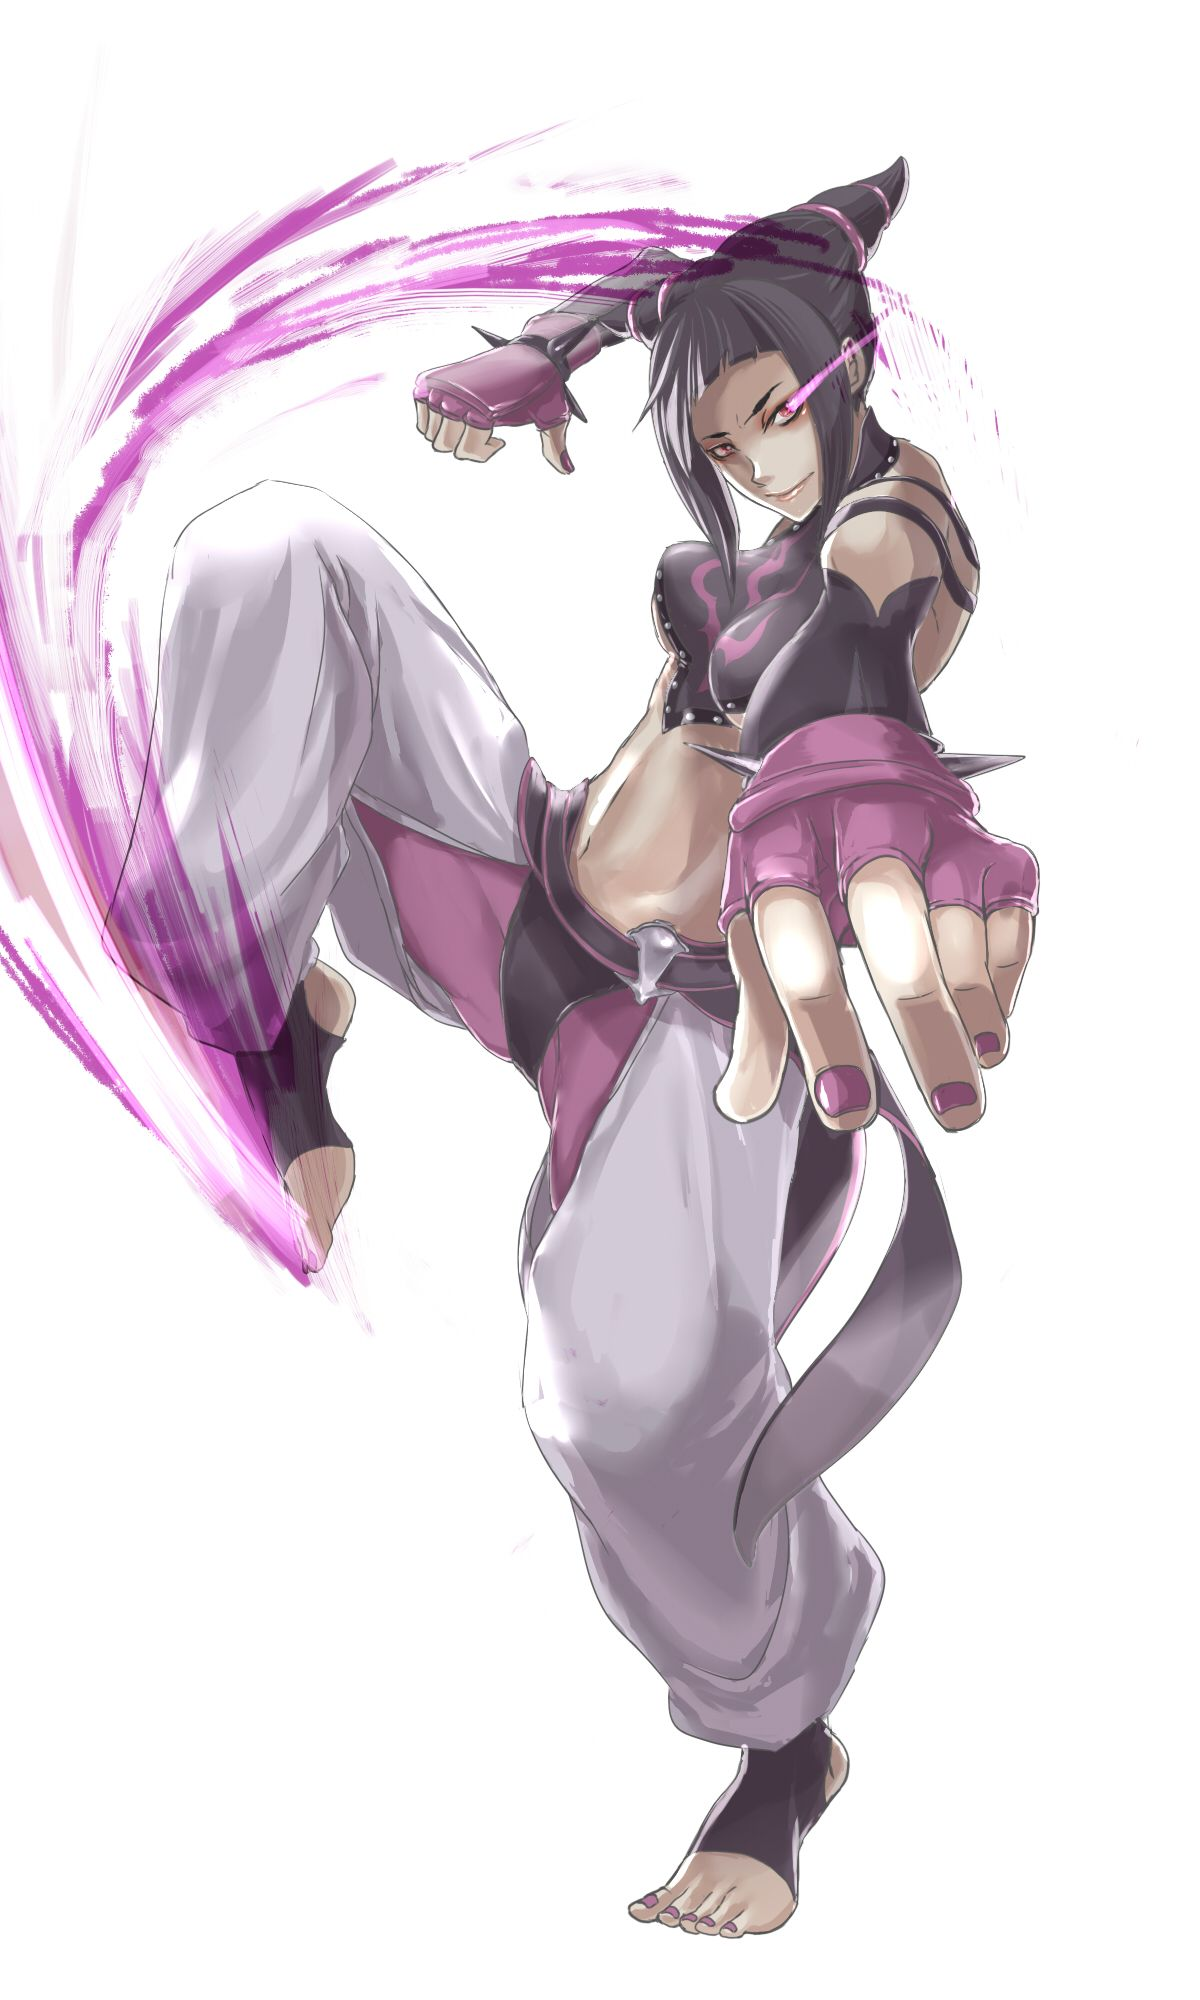 Street Fighter, Juri, by chima (colu-gaga)